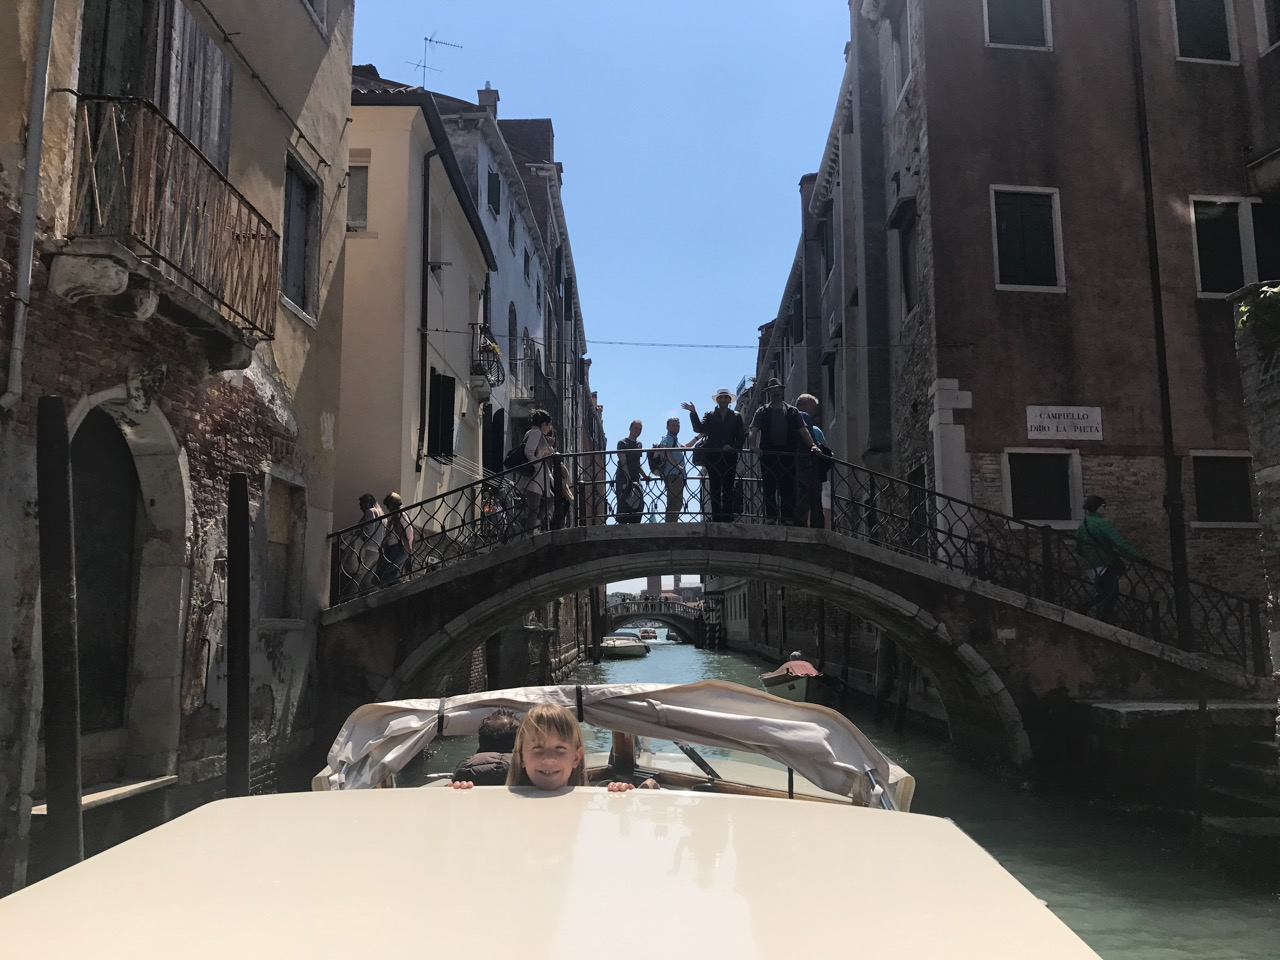 Getting places by boat in Venice is part of the fun.